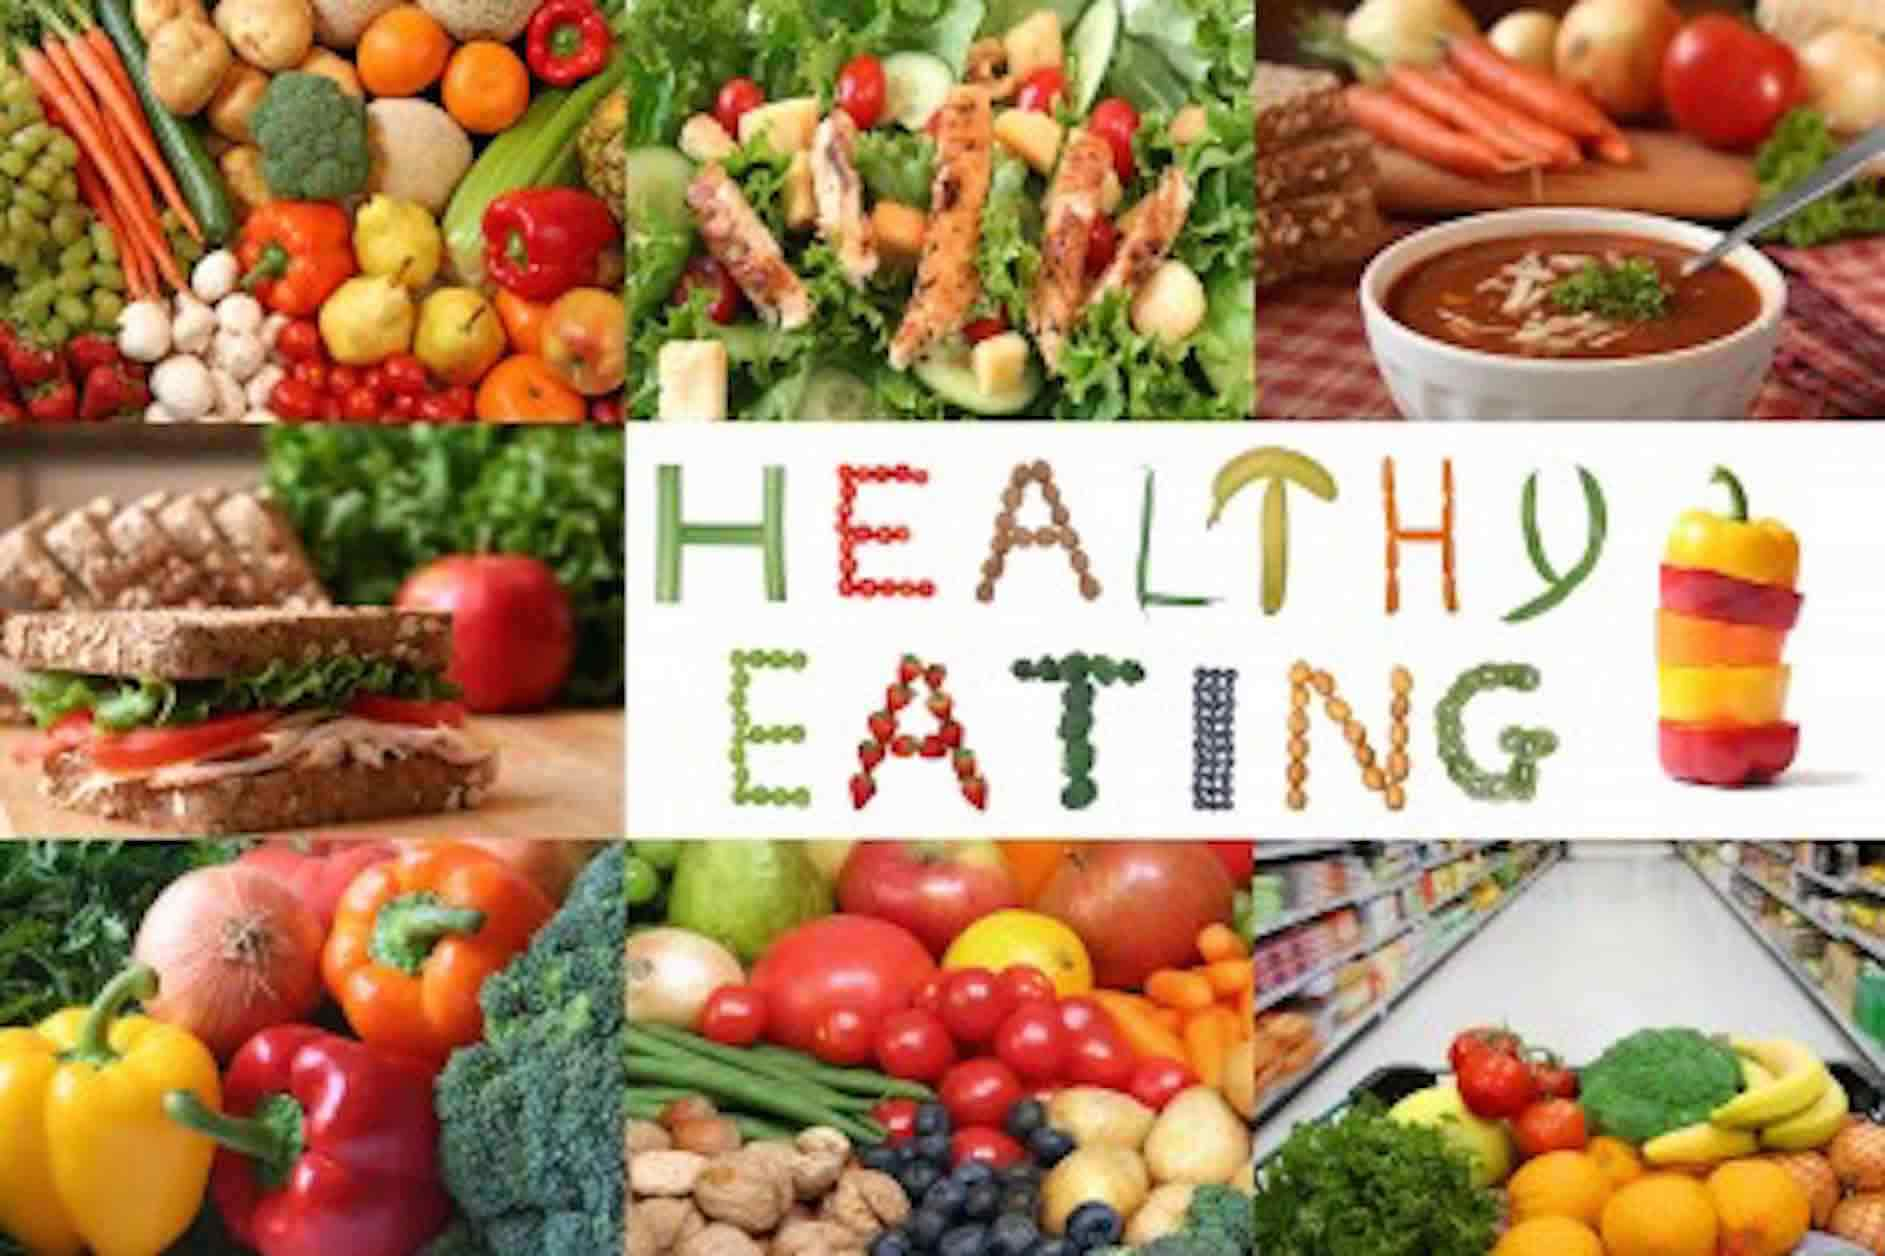 Healthy Eating – Part 2